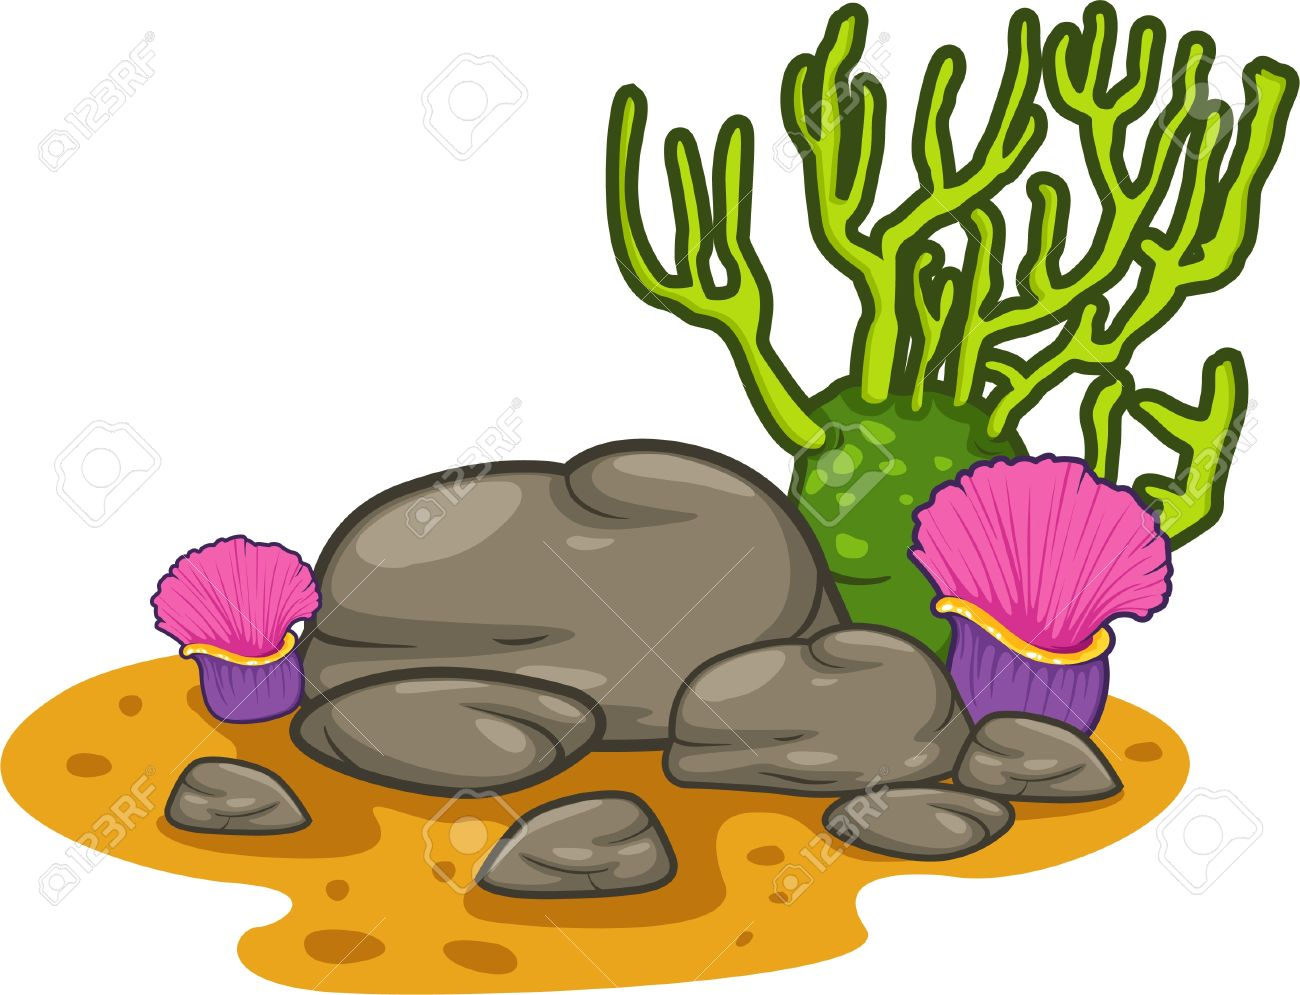 Corals clipart 5 » Clipart Station.